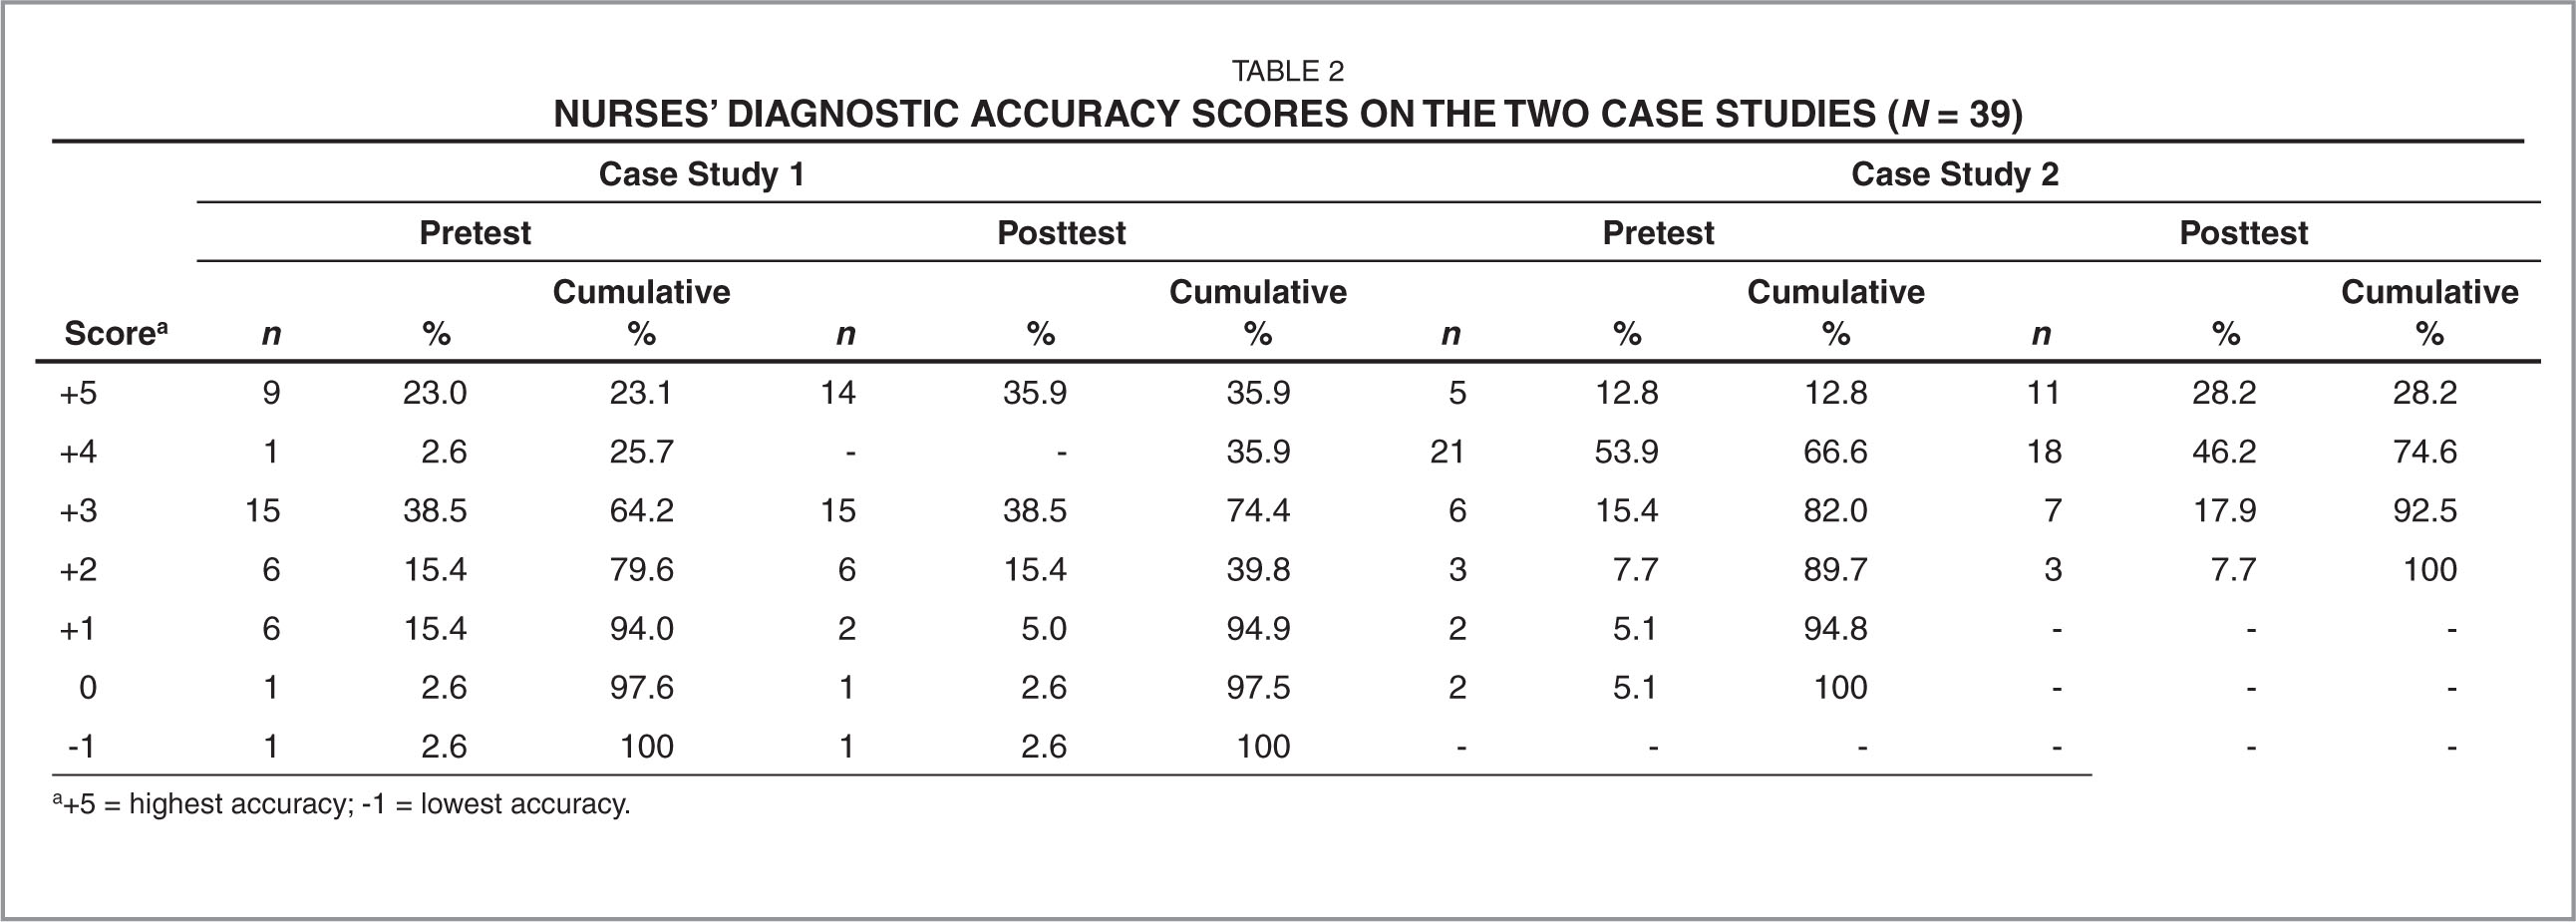 Nurses' Diagnostic Accuracy Scores on the Two Case Studies (n = 39)